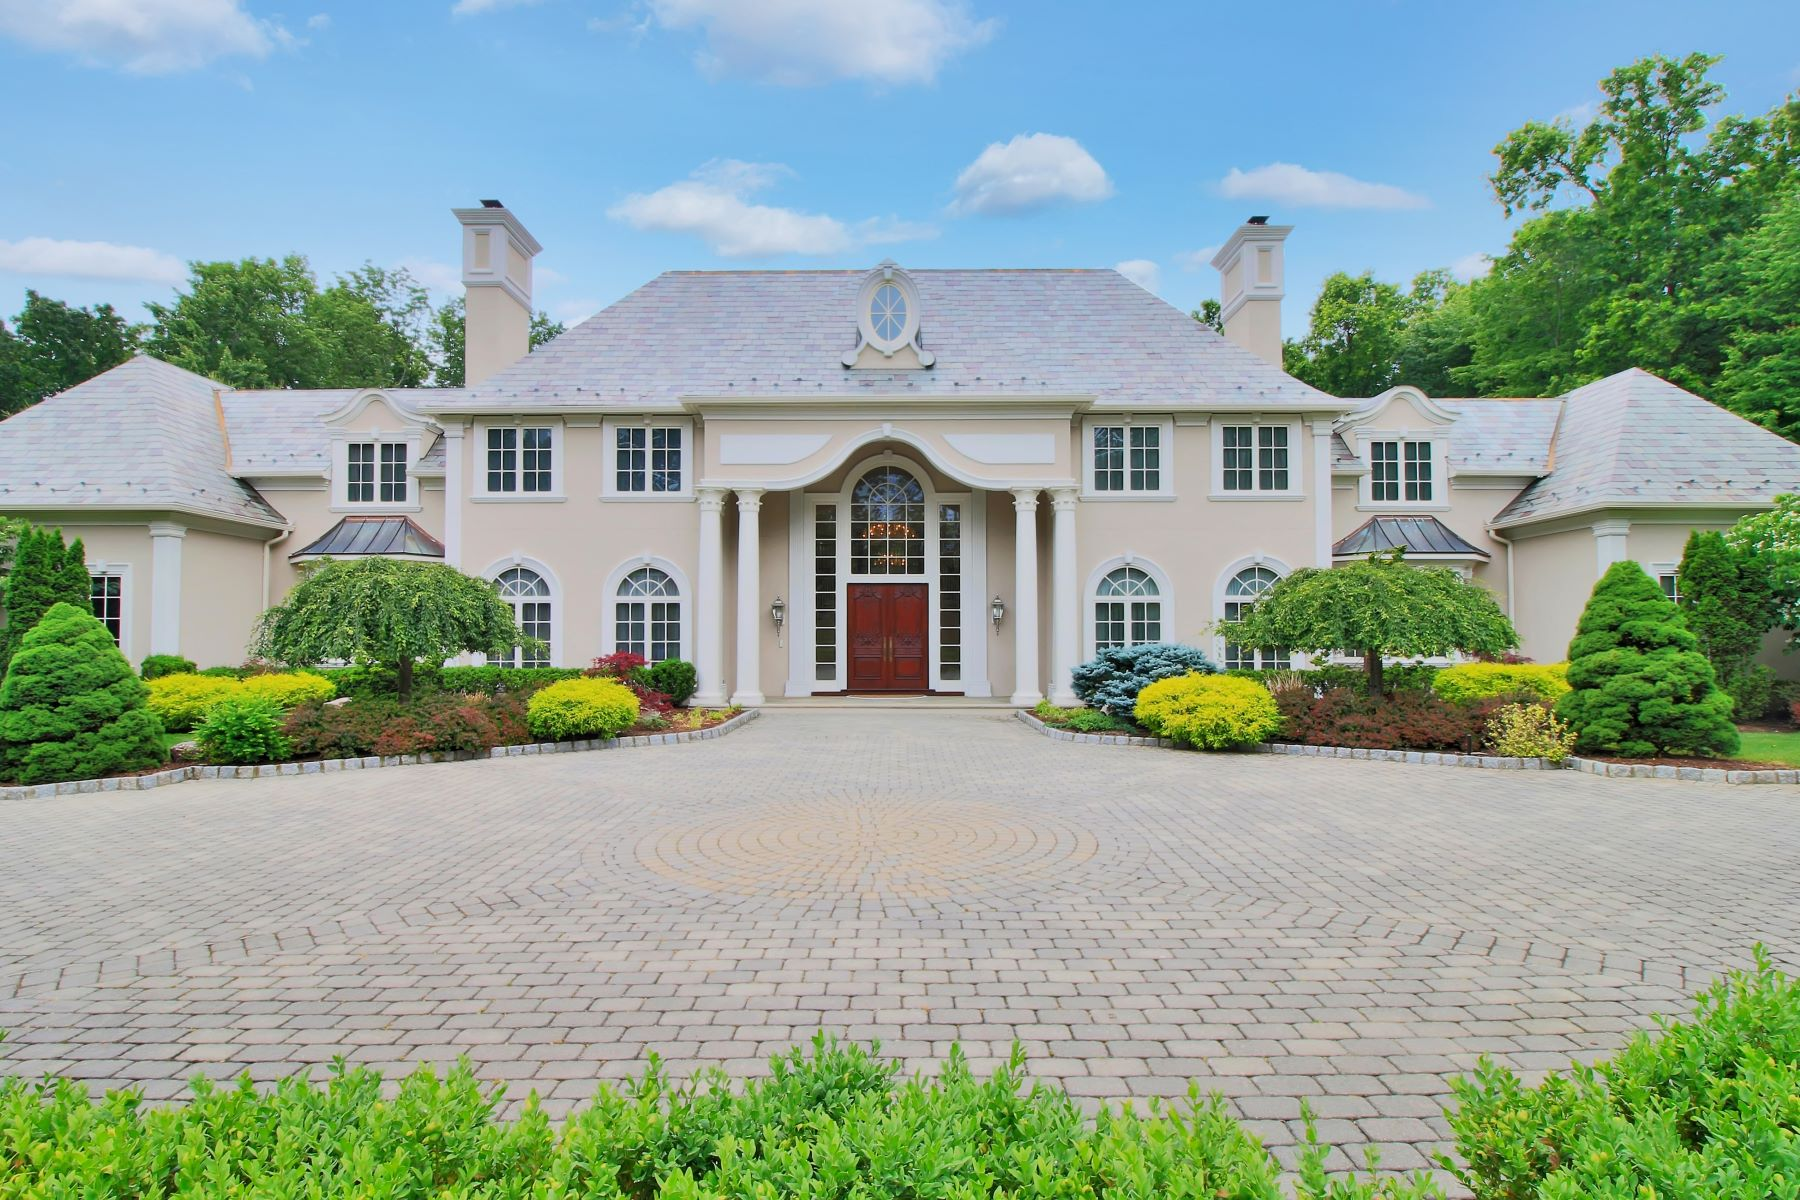 Single Family Home for Sale at Breathtaking! 33 Cameron Road Saddle River, New Jersey 07458 United States